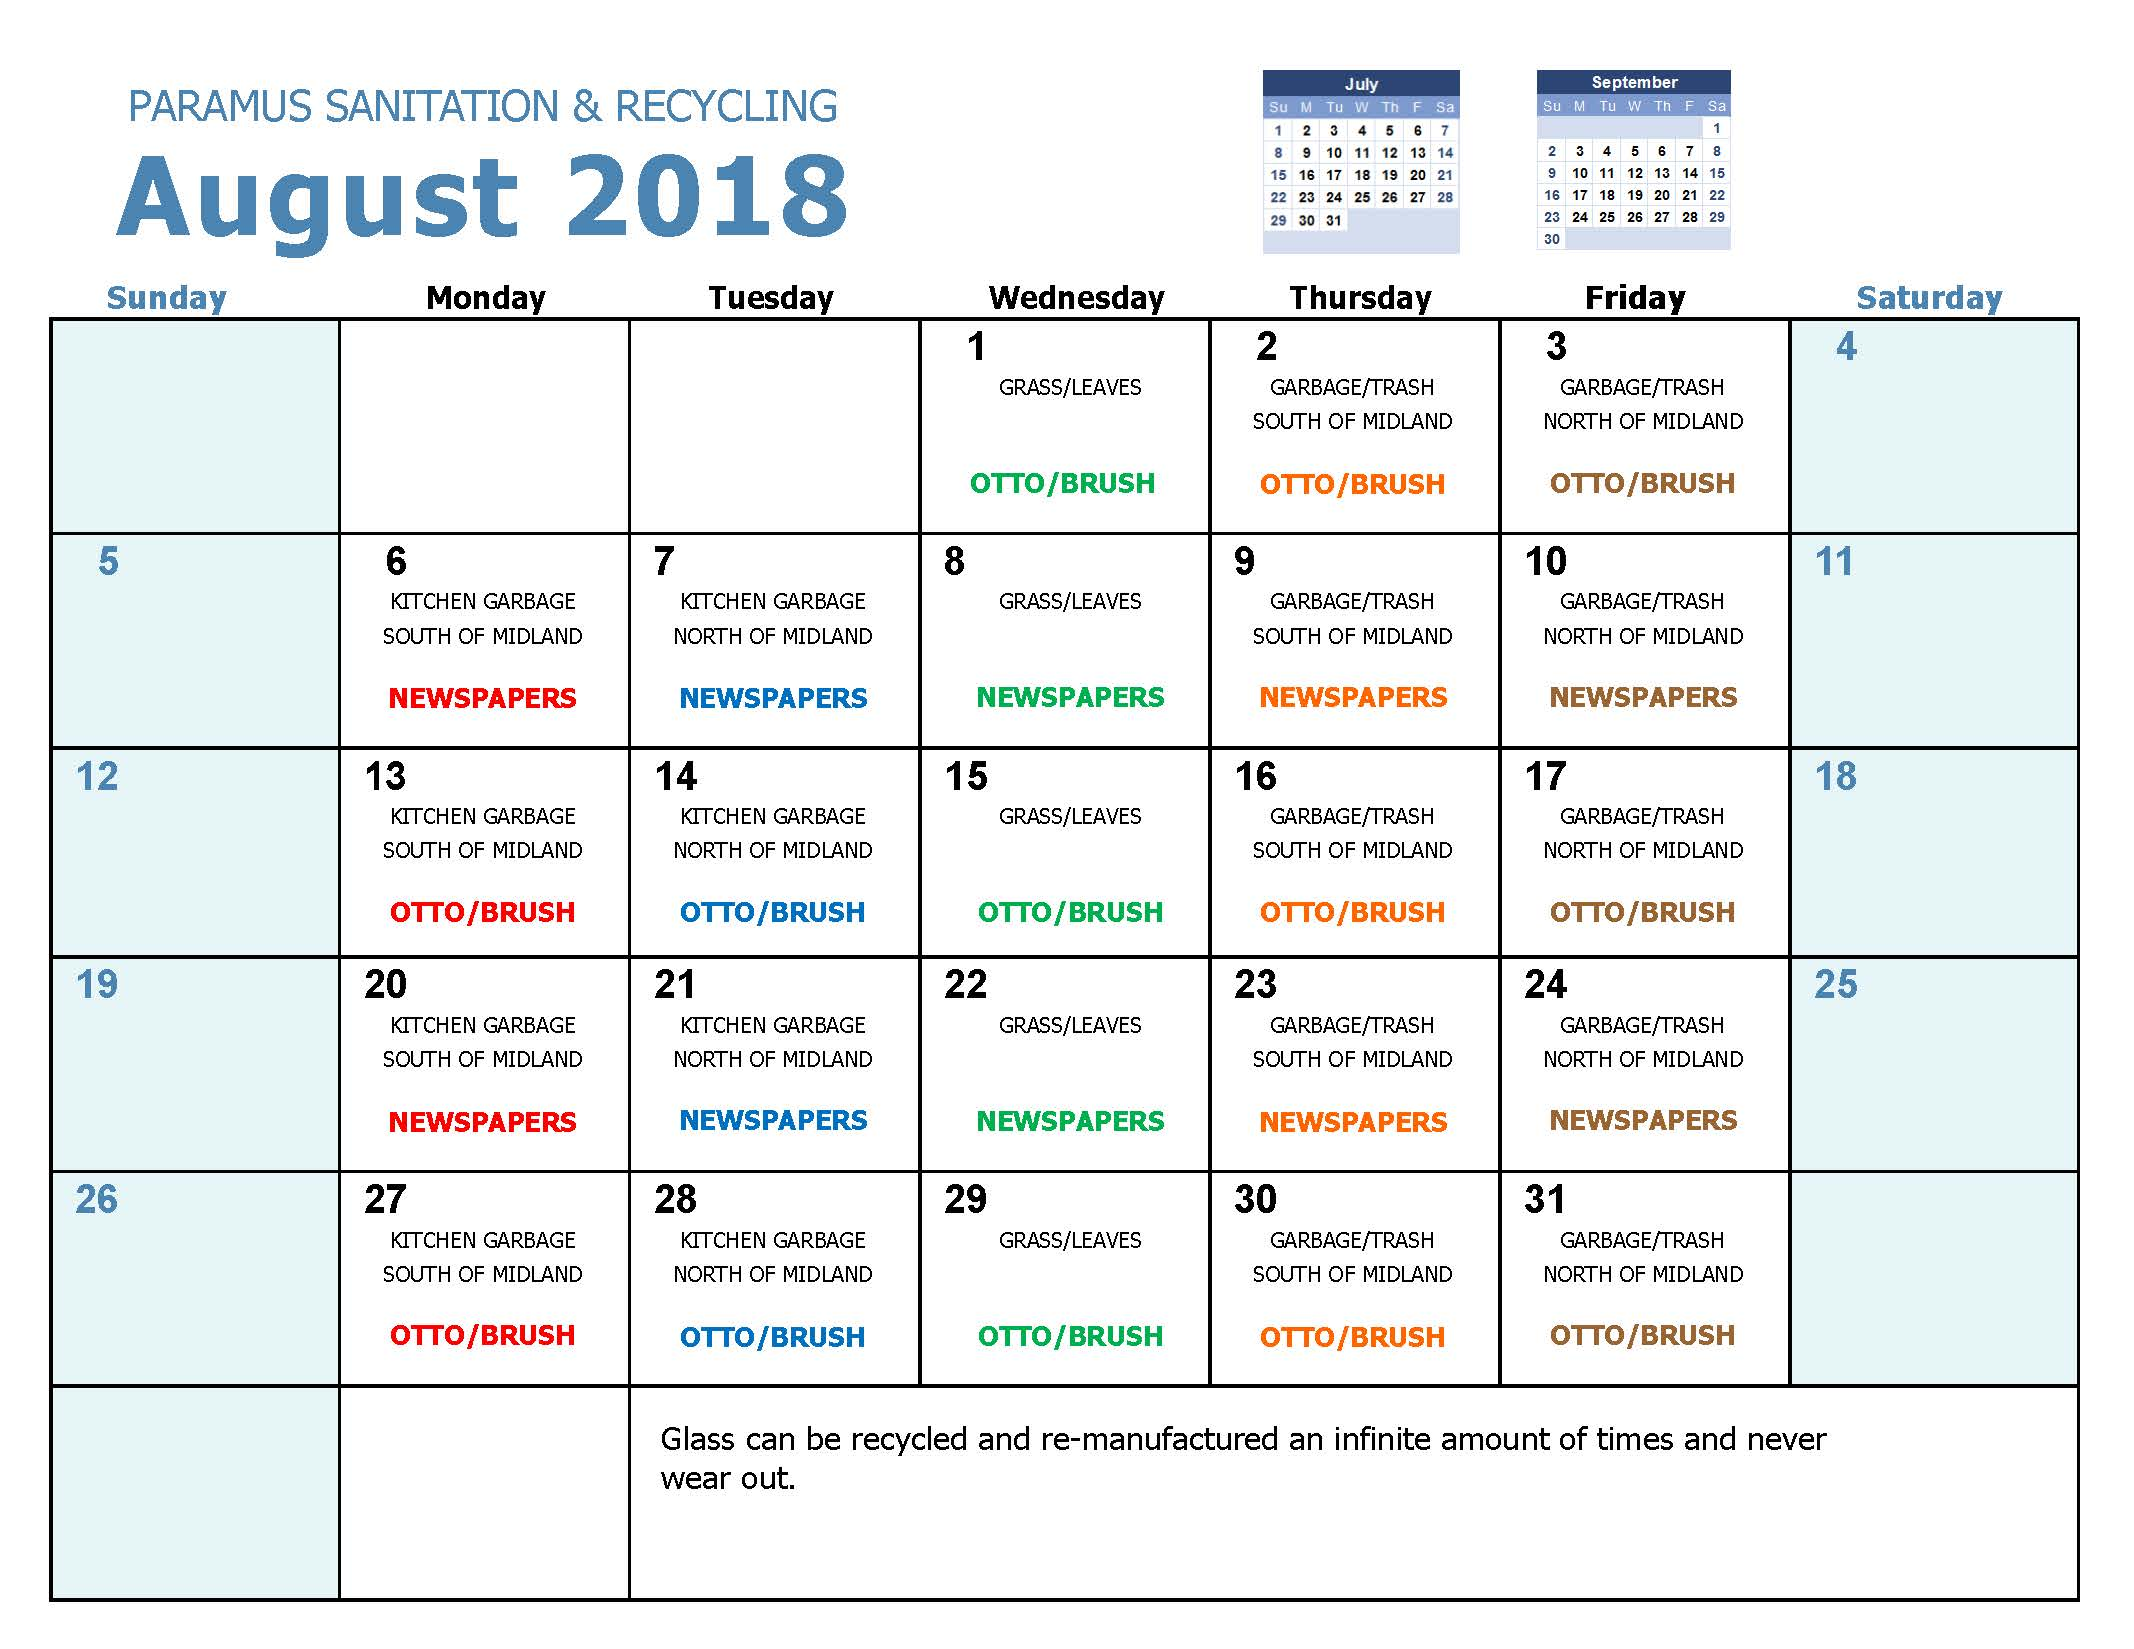 2018 Recycling Calendar Aug